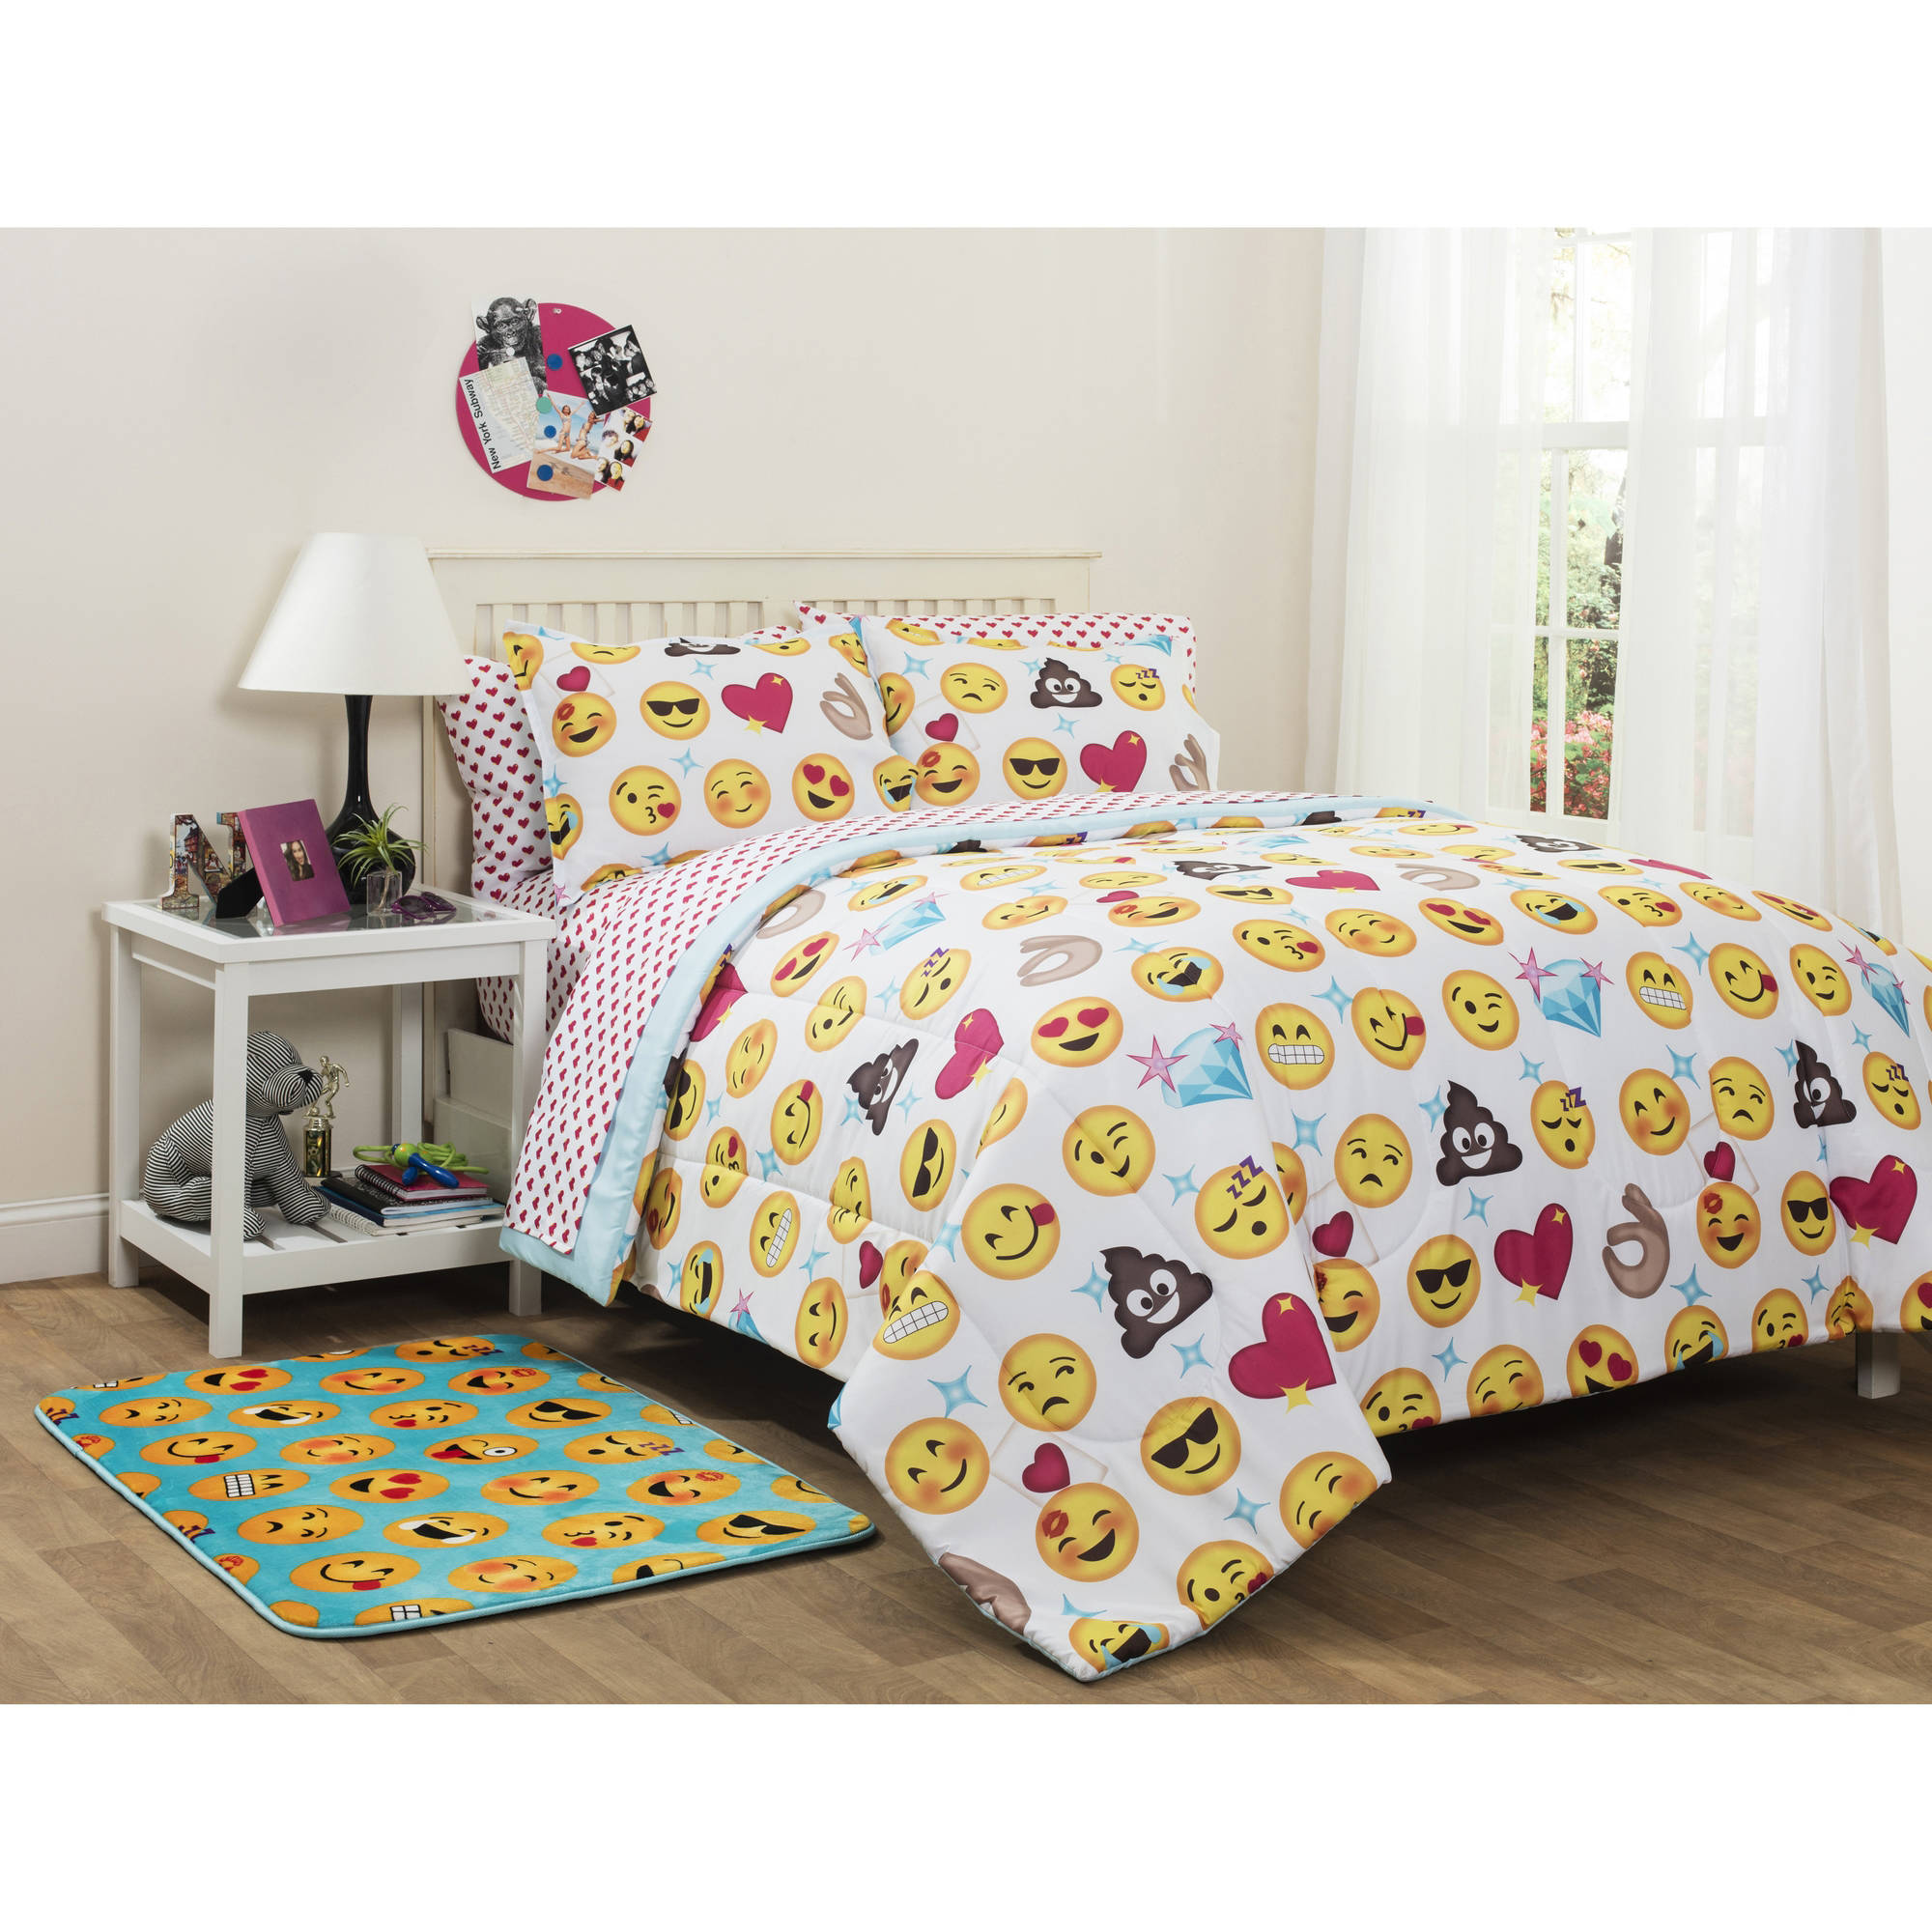 Walmart Bed Sheets Set